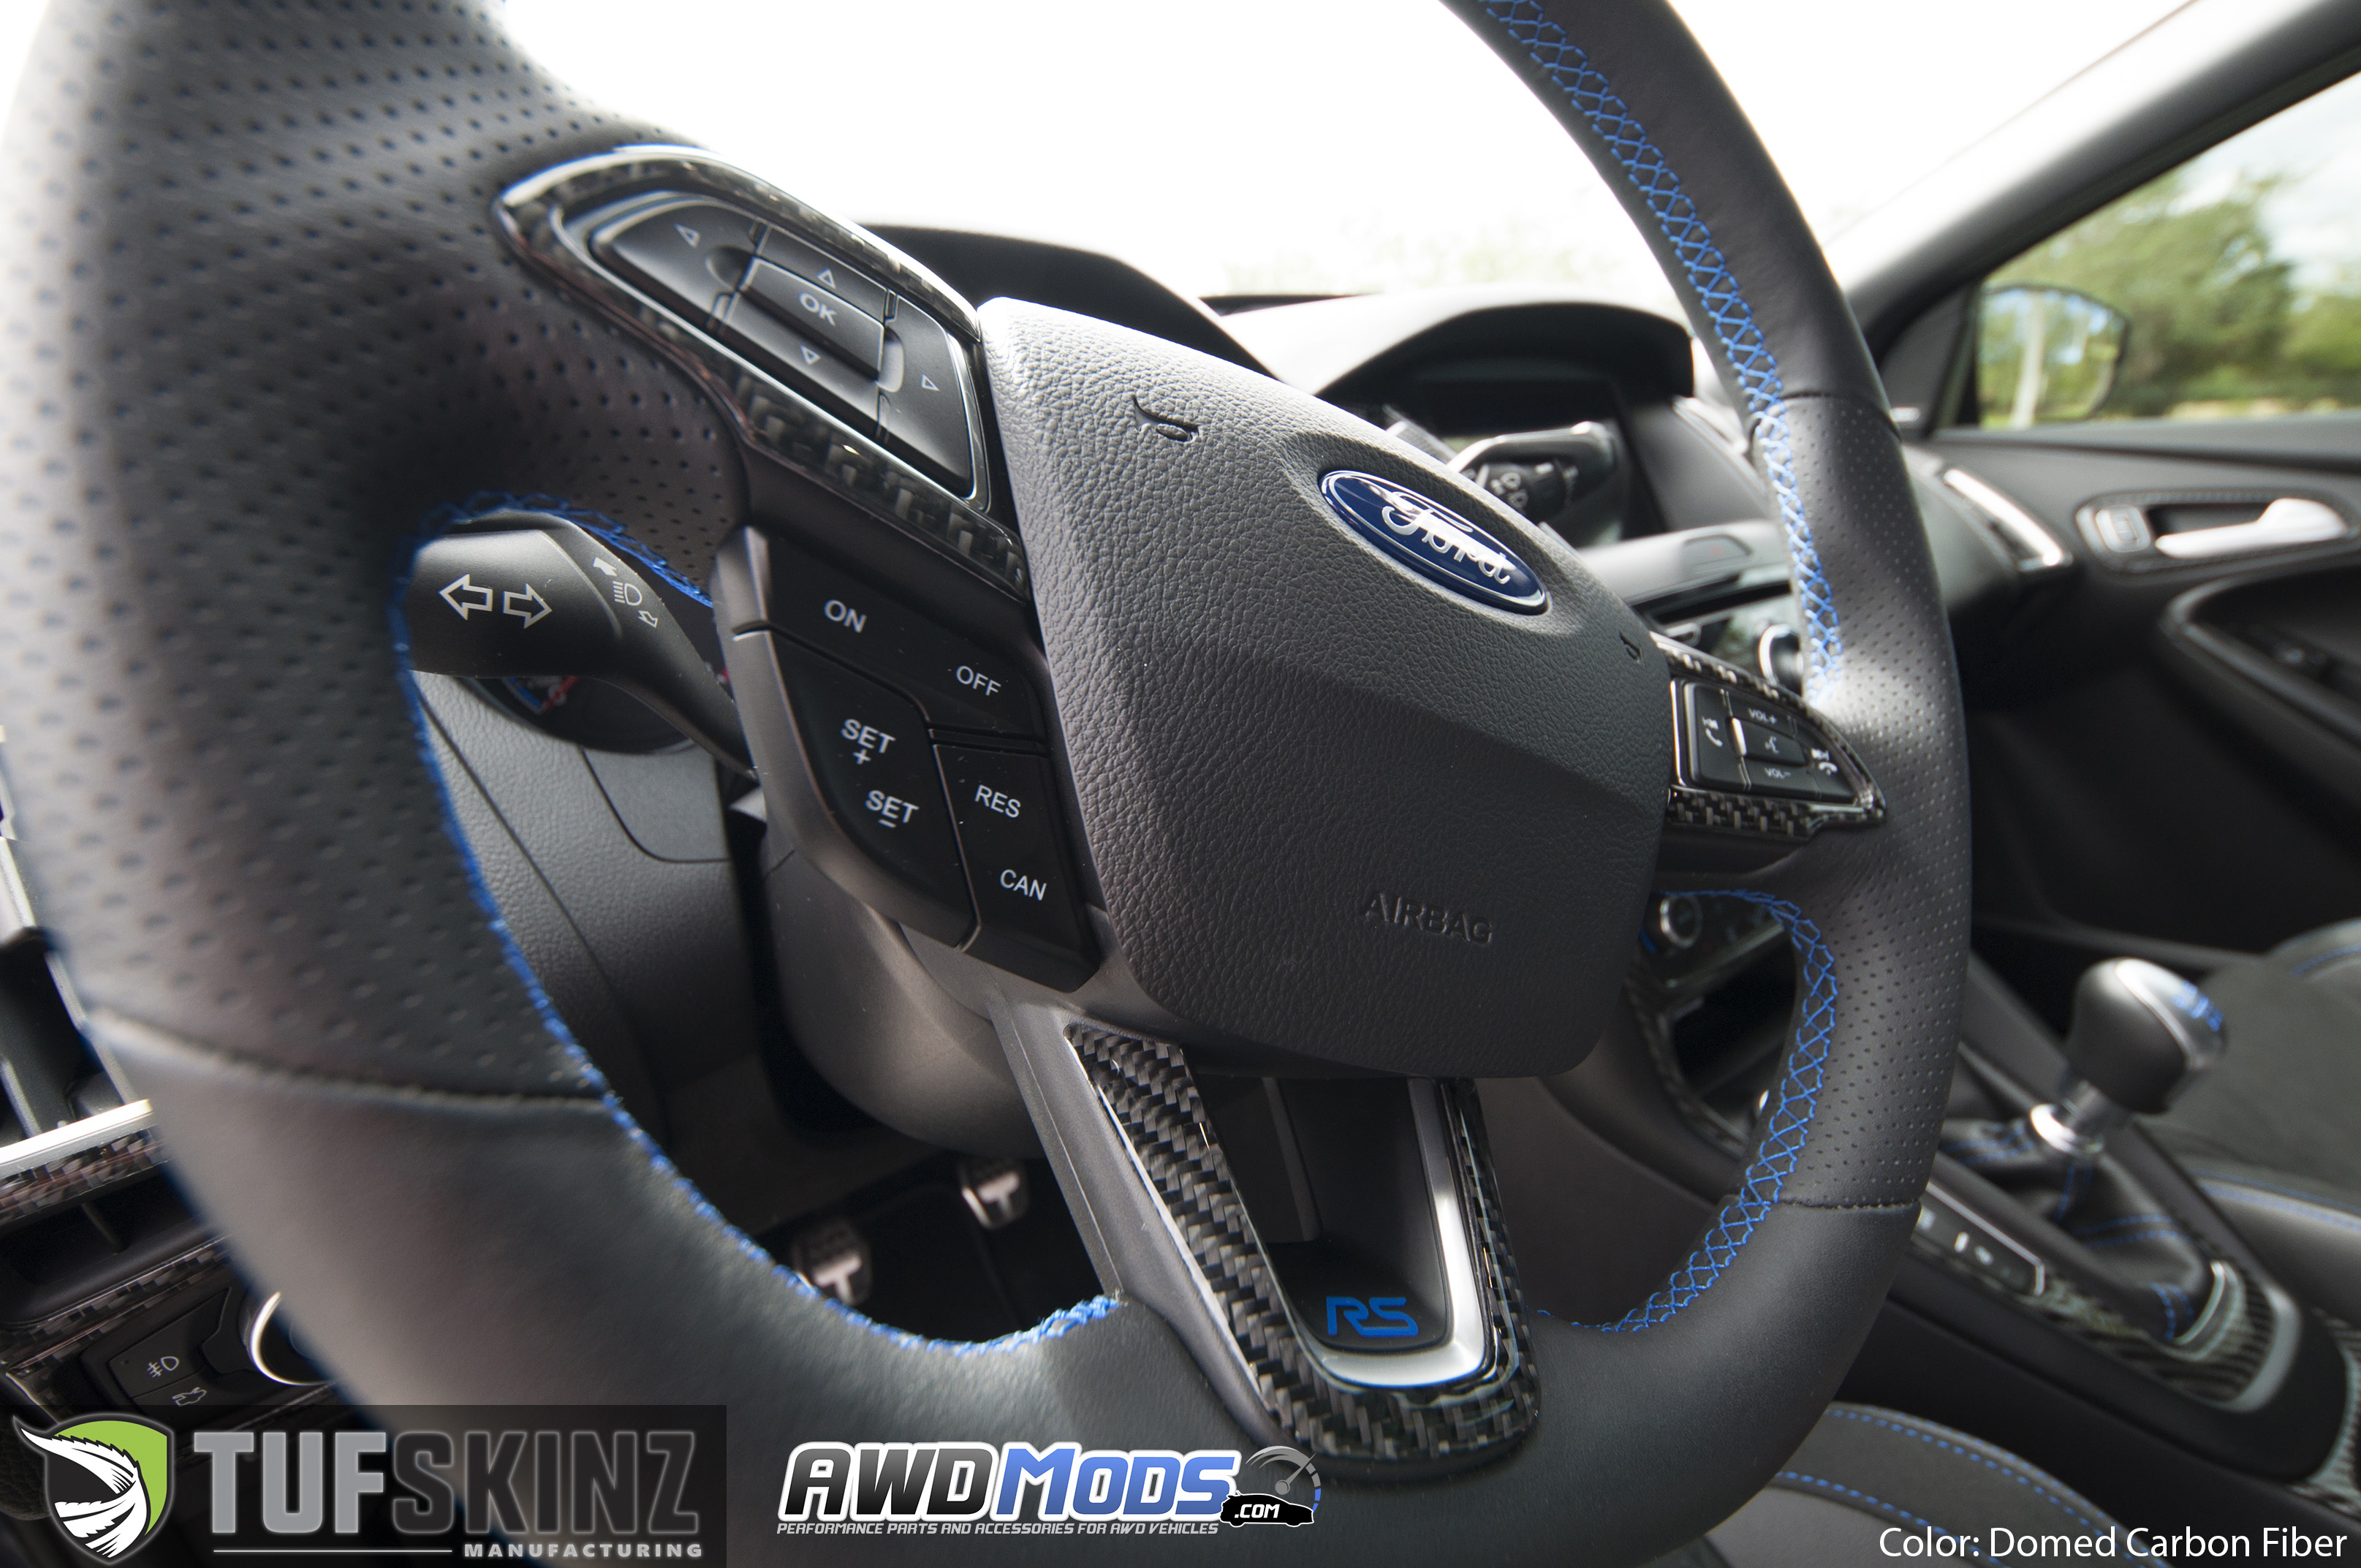 Ford Focus RS / ST Carbon Fiber Accent Kit by Tufskinz (10 piece kit)